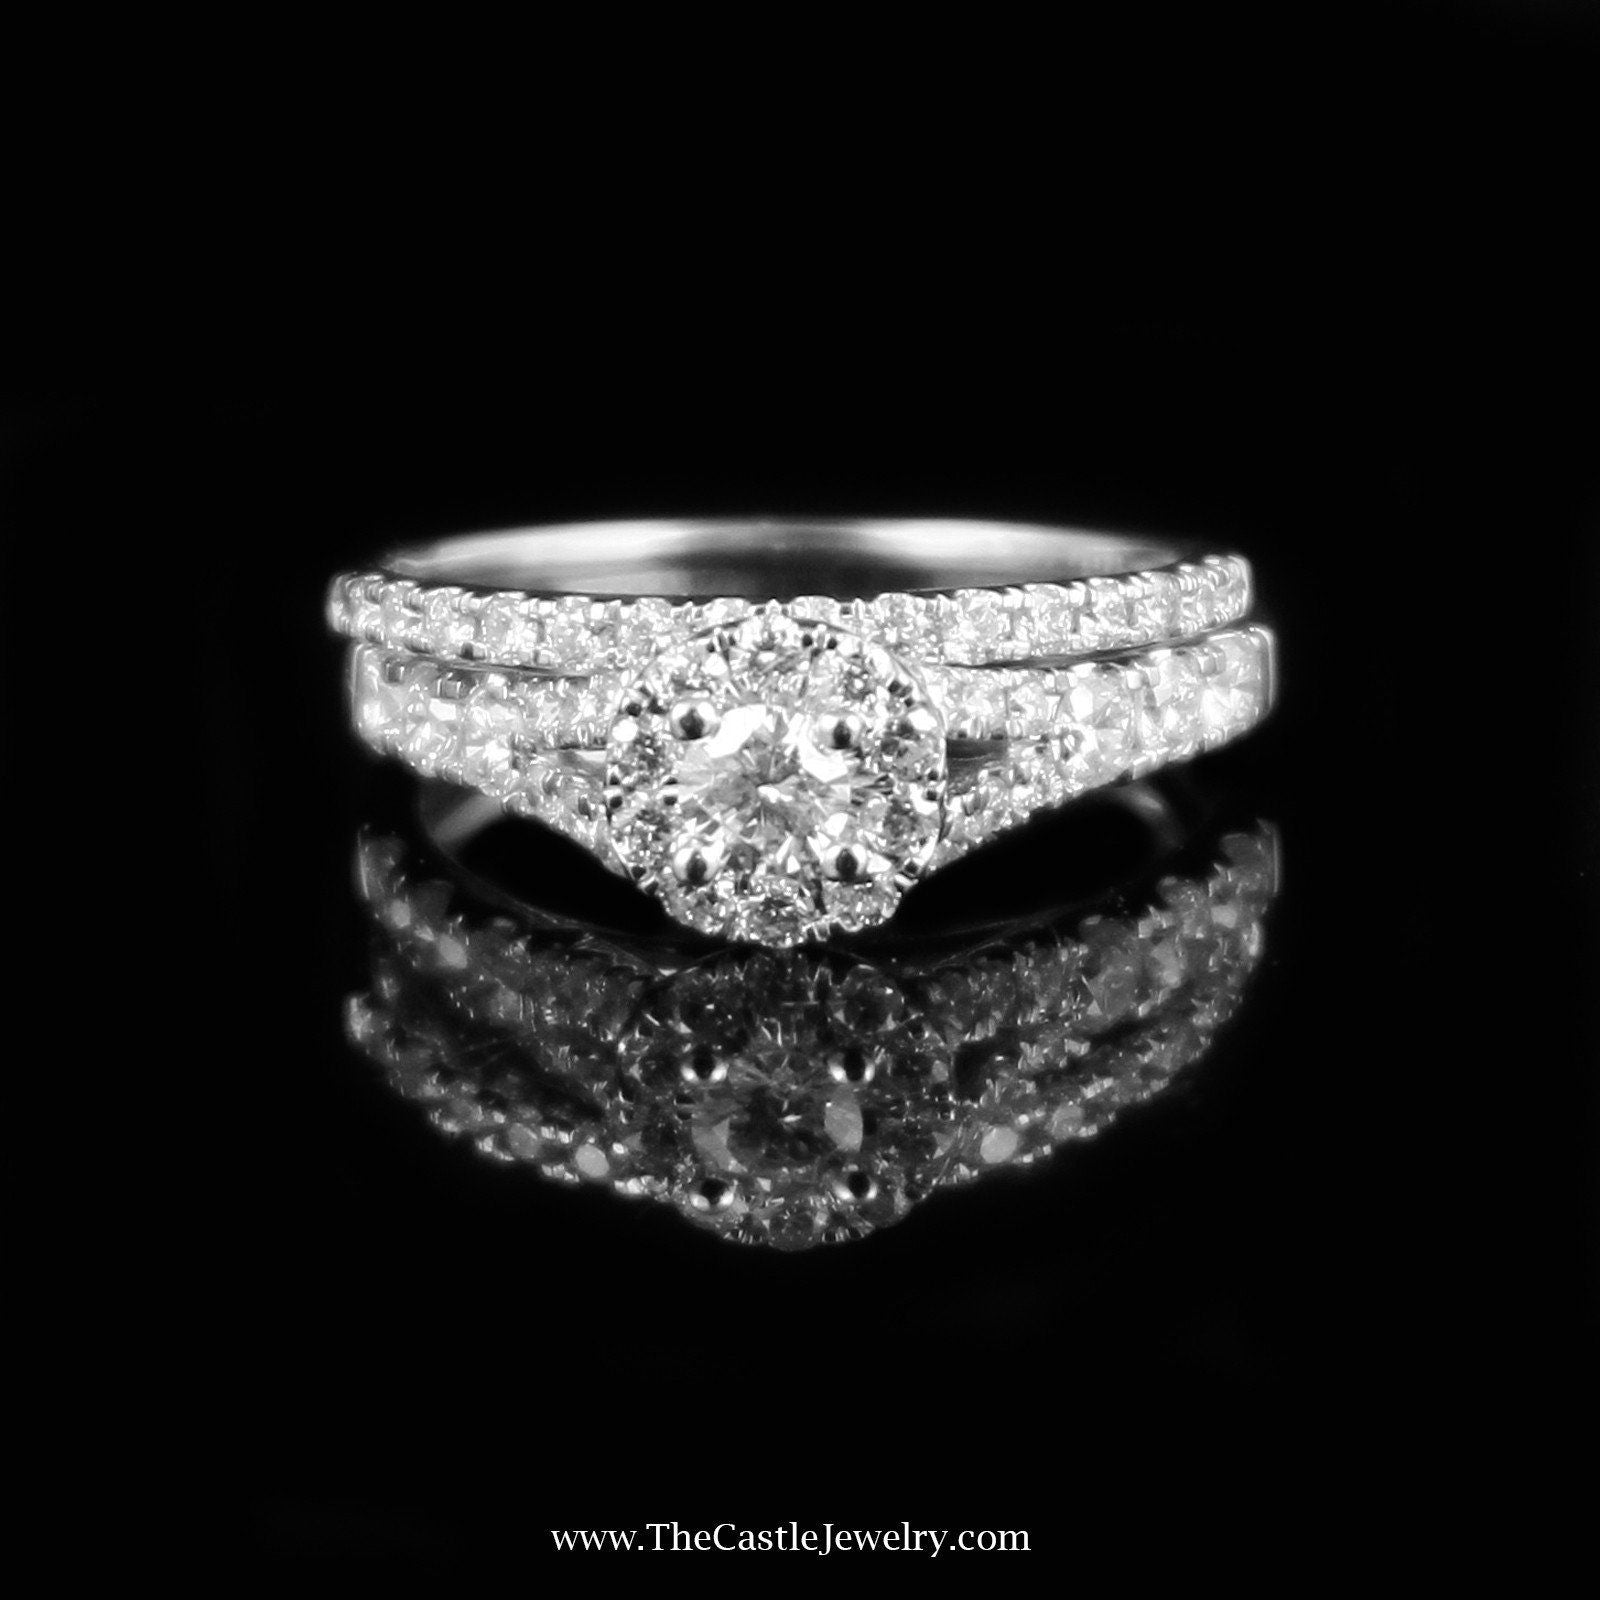 Crown Collection 1cttw Diamond Bridal Set w/ Halo Accent in 14K White Gold